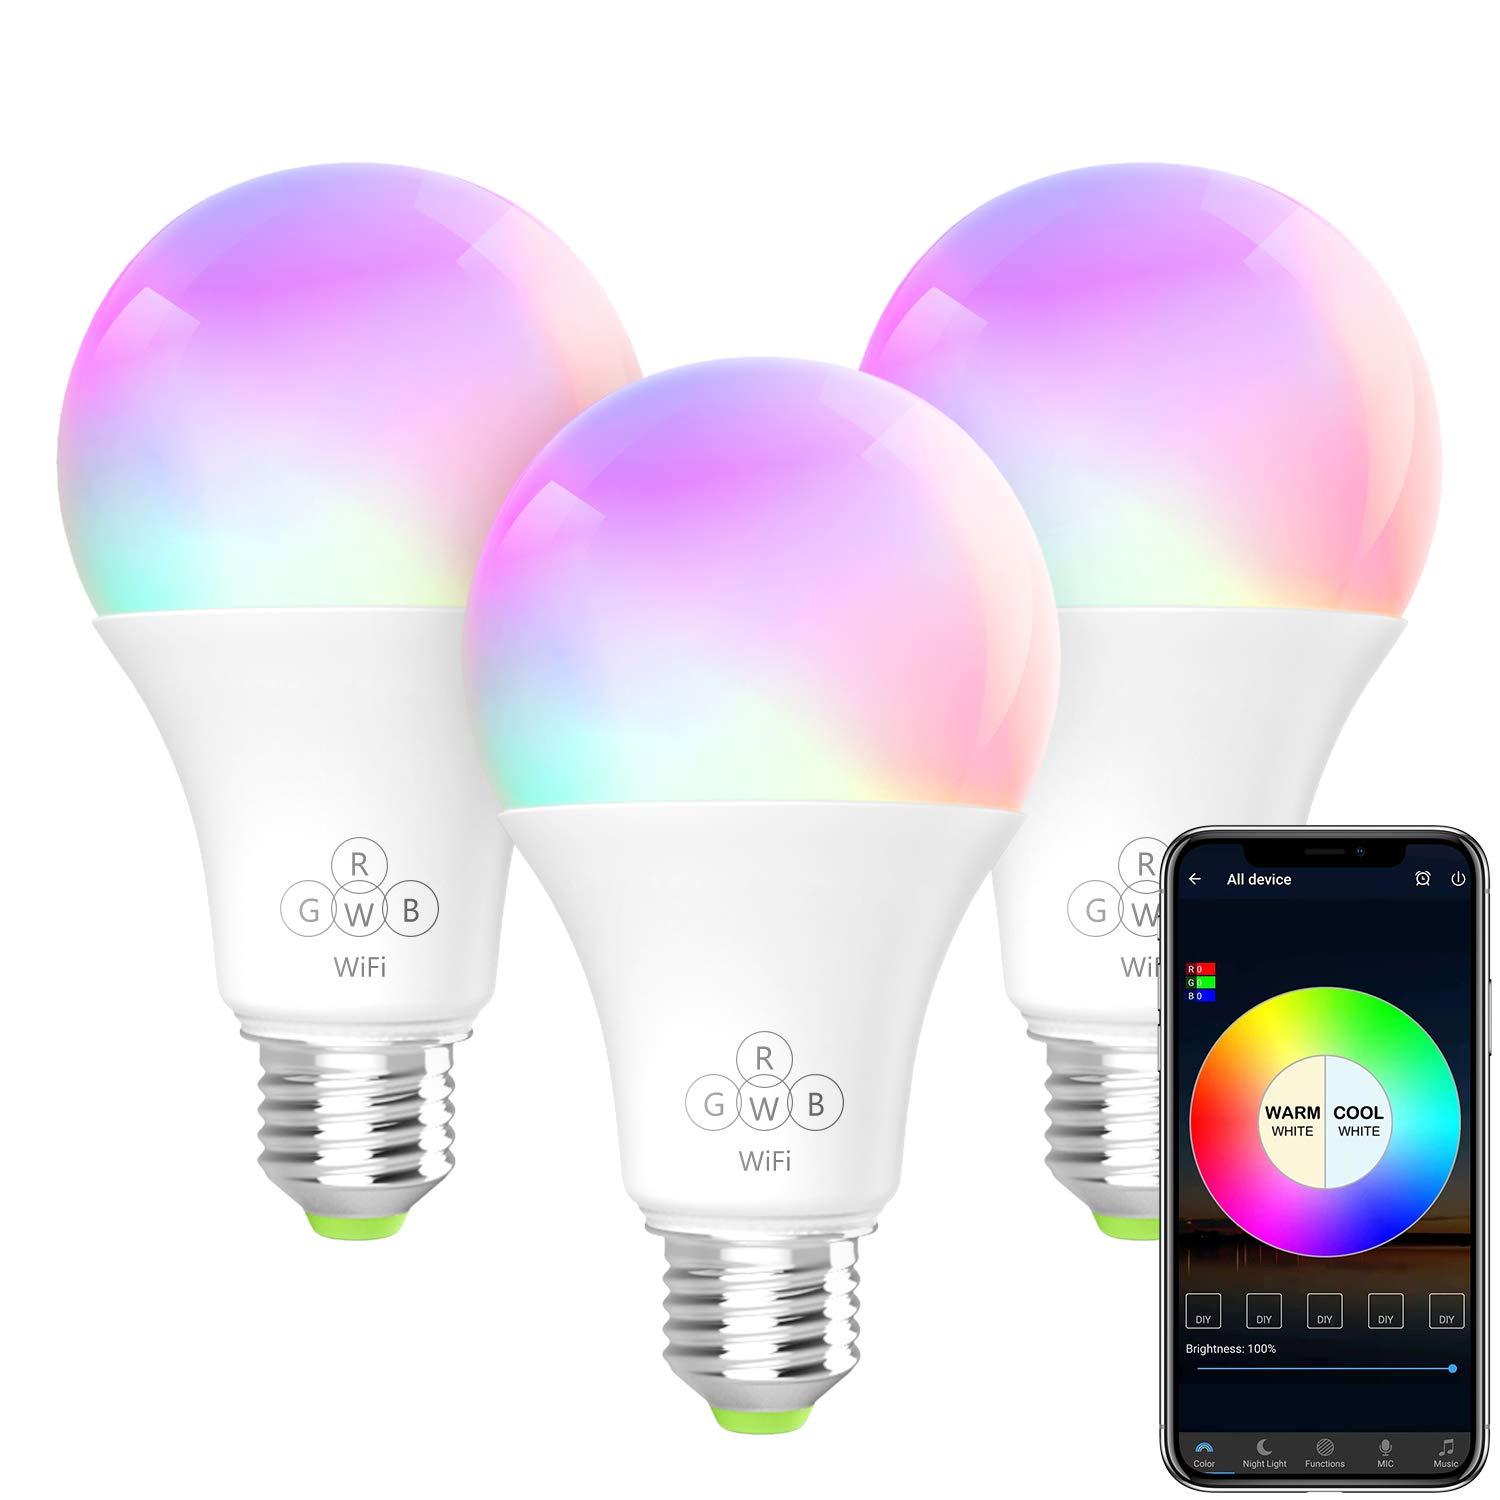 BERENNIS Smart Light Bulb, A19 E26 RGBW Wi-Fi LED Bulb [6.5W 500LM] Dimmable Multicolored Lights, No Hub Required, Works with Amazon Alexa and Google Home (3 Pack)